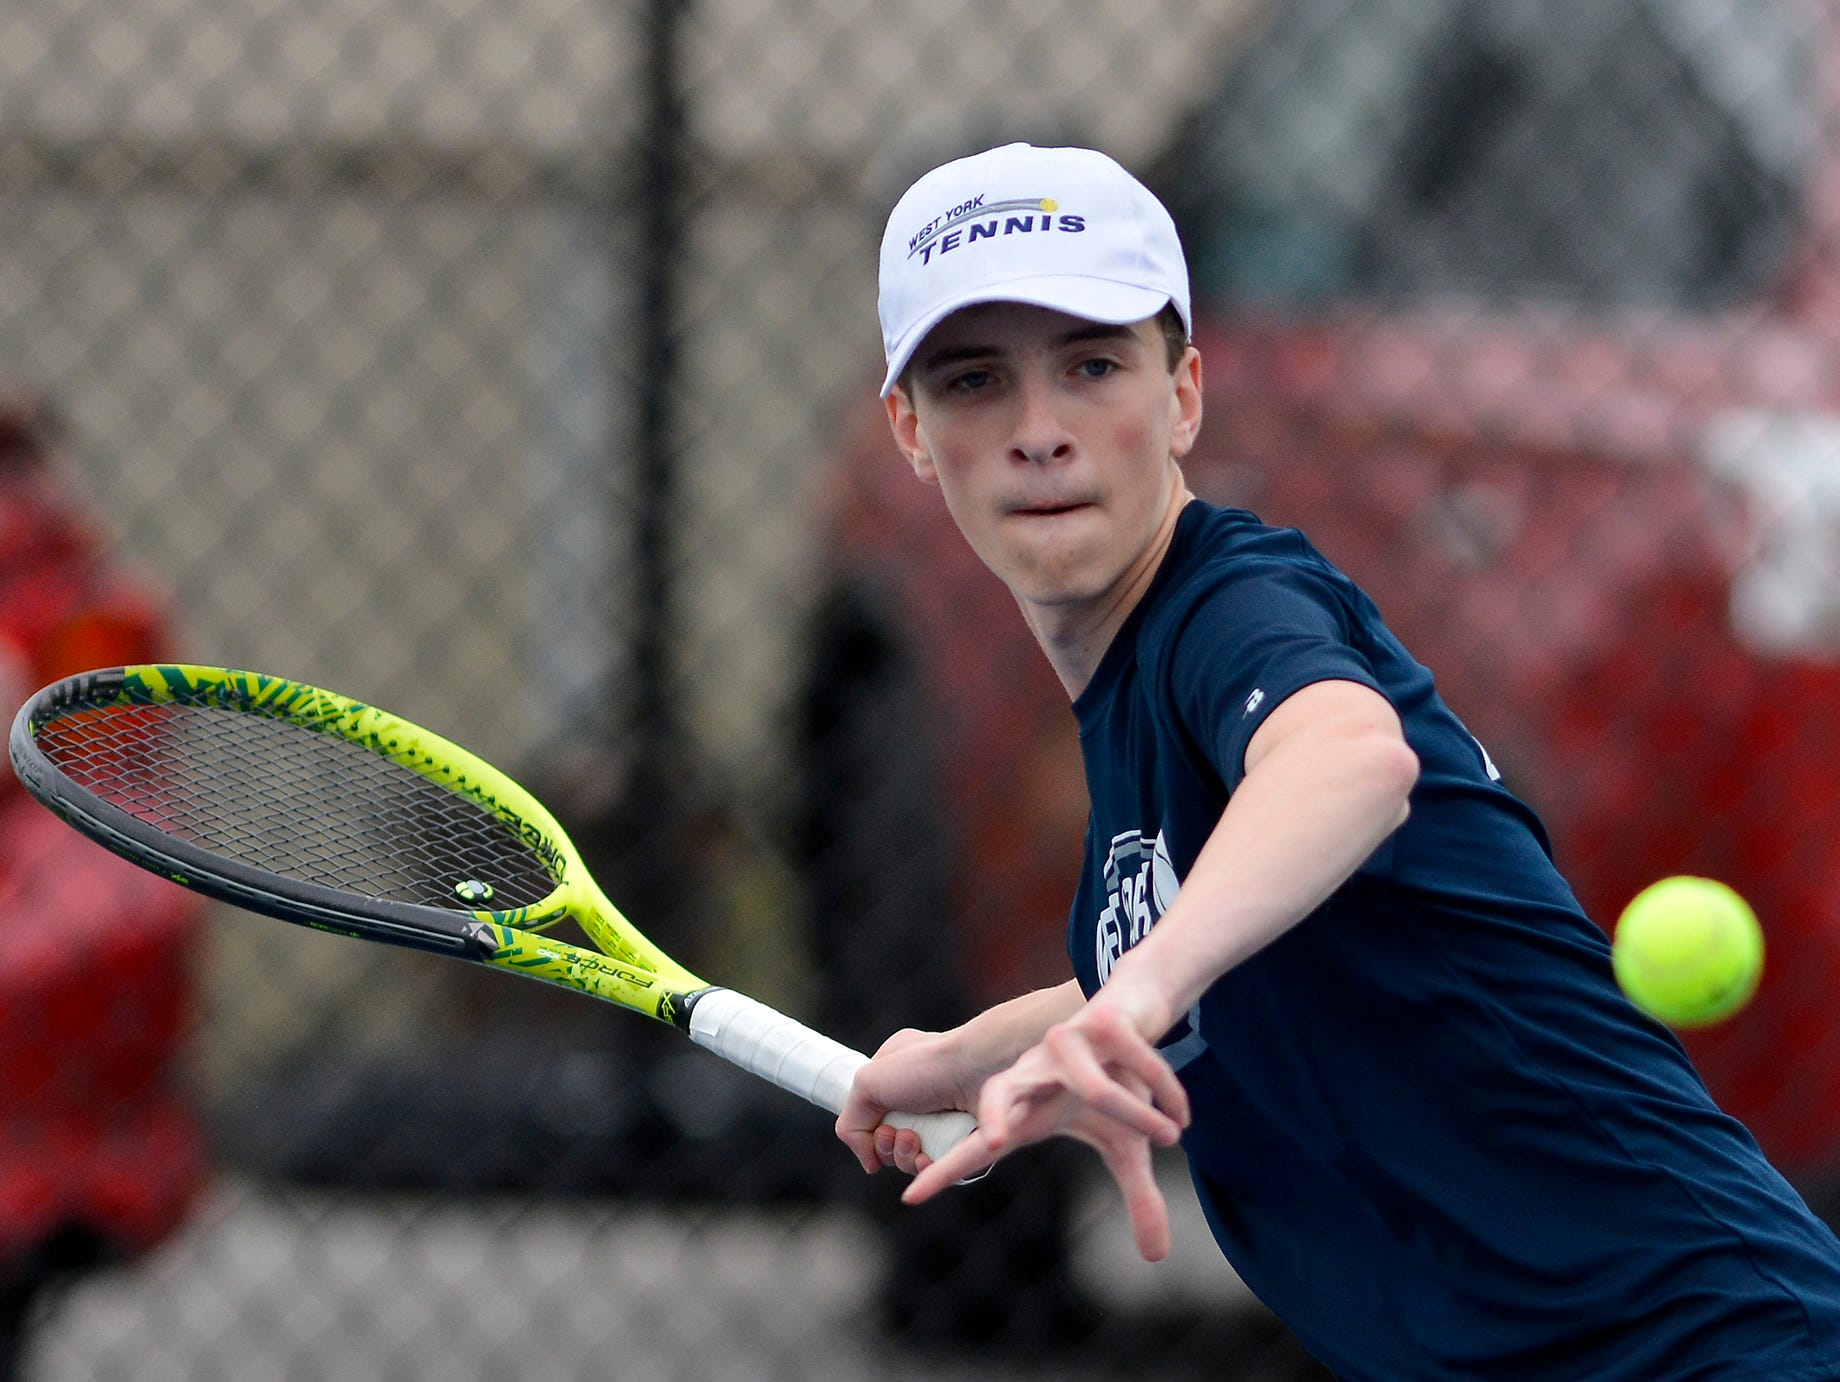 West York's Augie Citrone focuses on the ball while playing Josh Lynn of Hanover in the number one seed match, Monday, April 8, 2019.